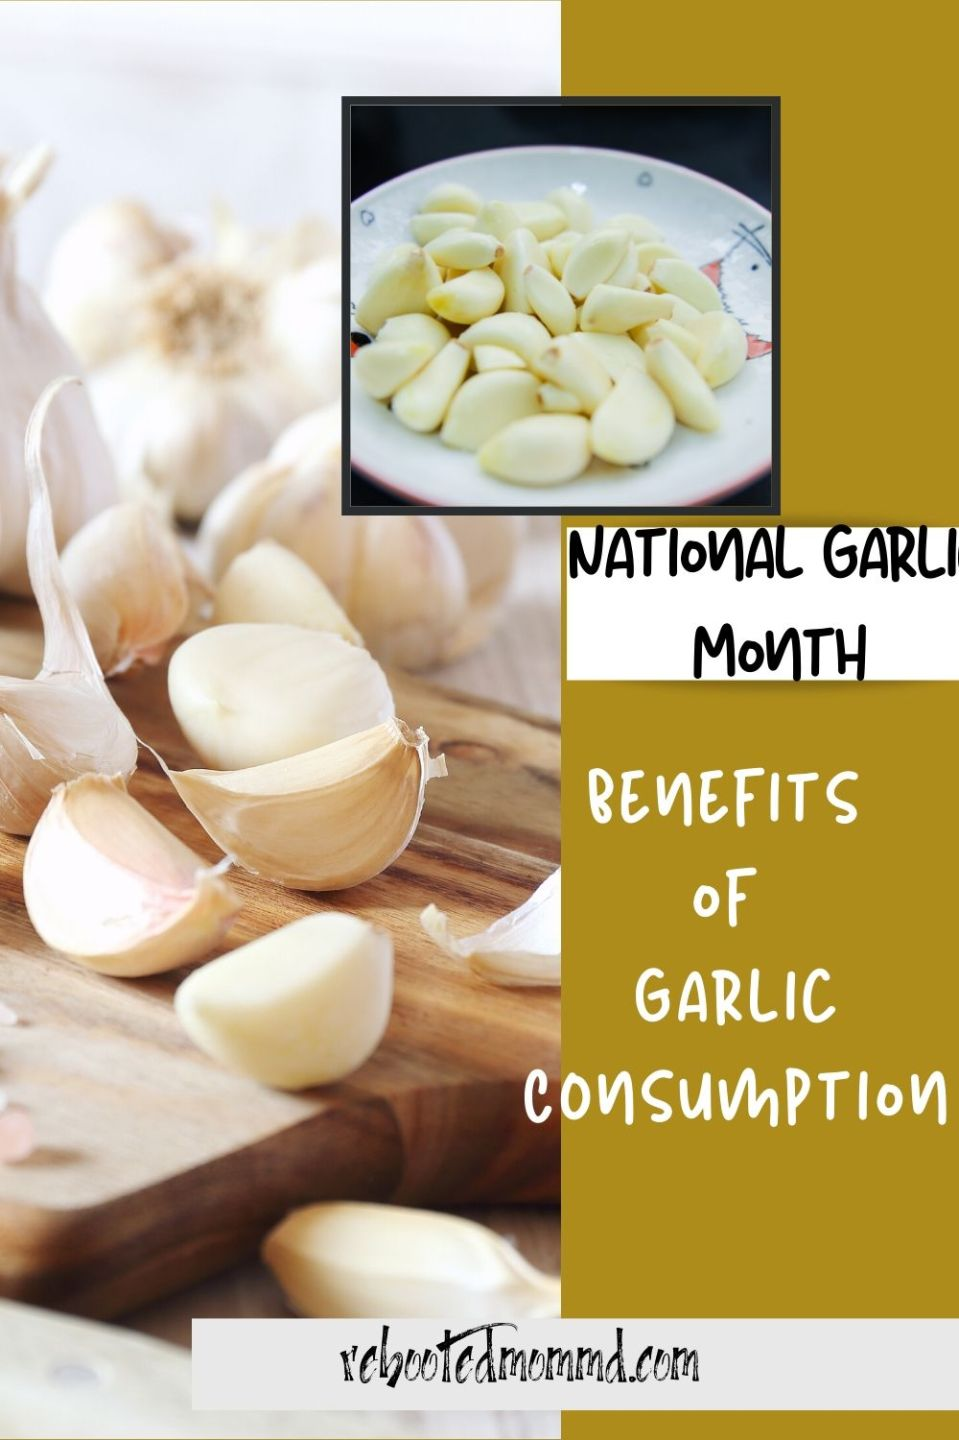 National Garlic Month: Benefits of Garlic